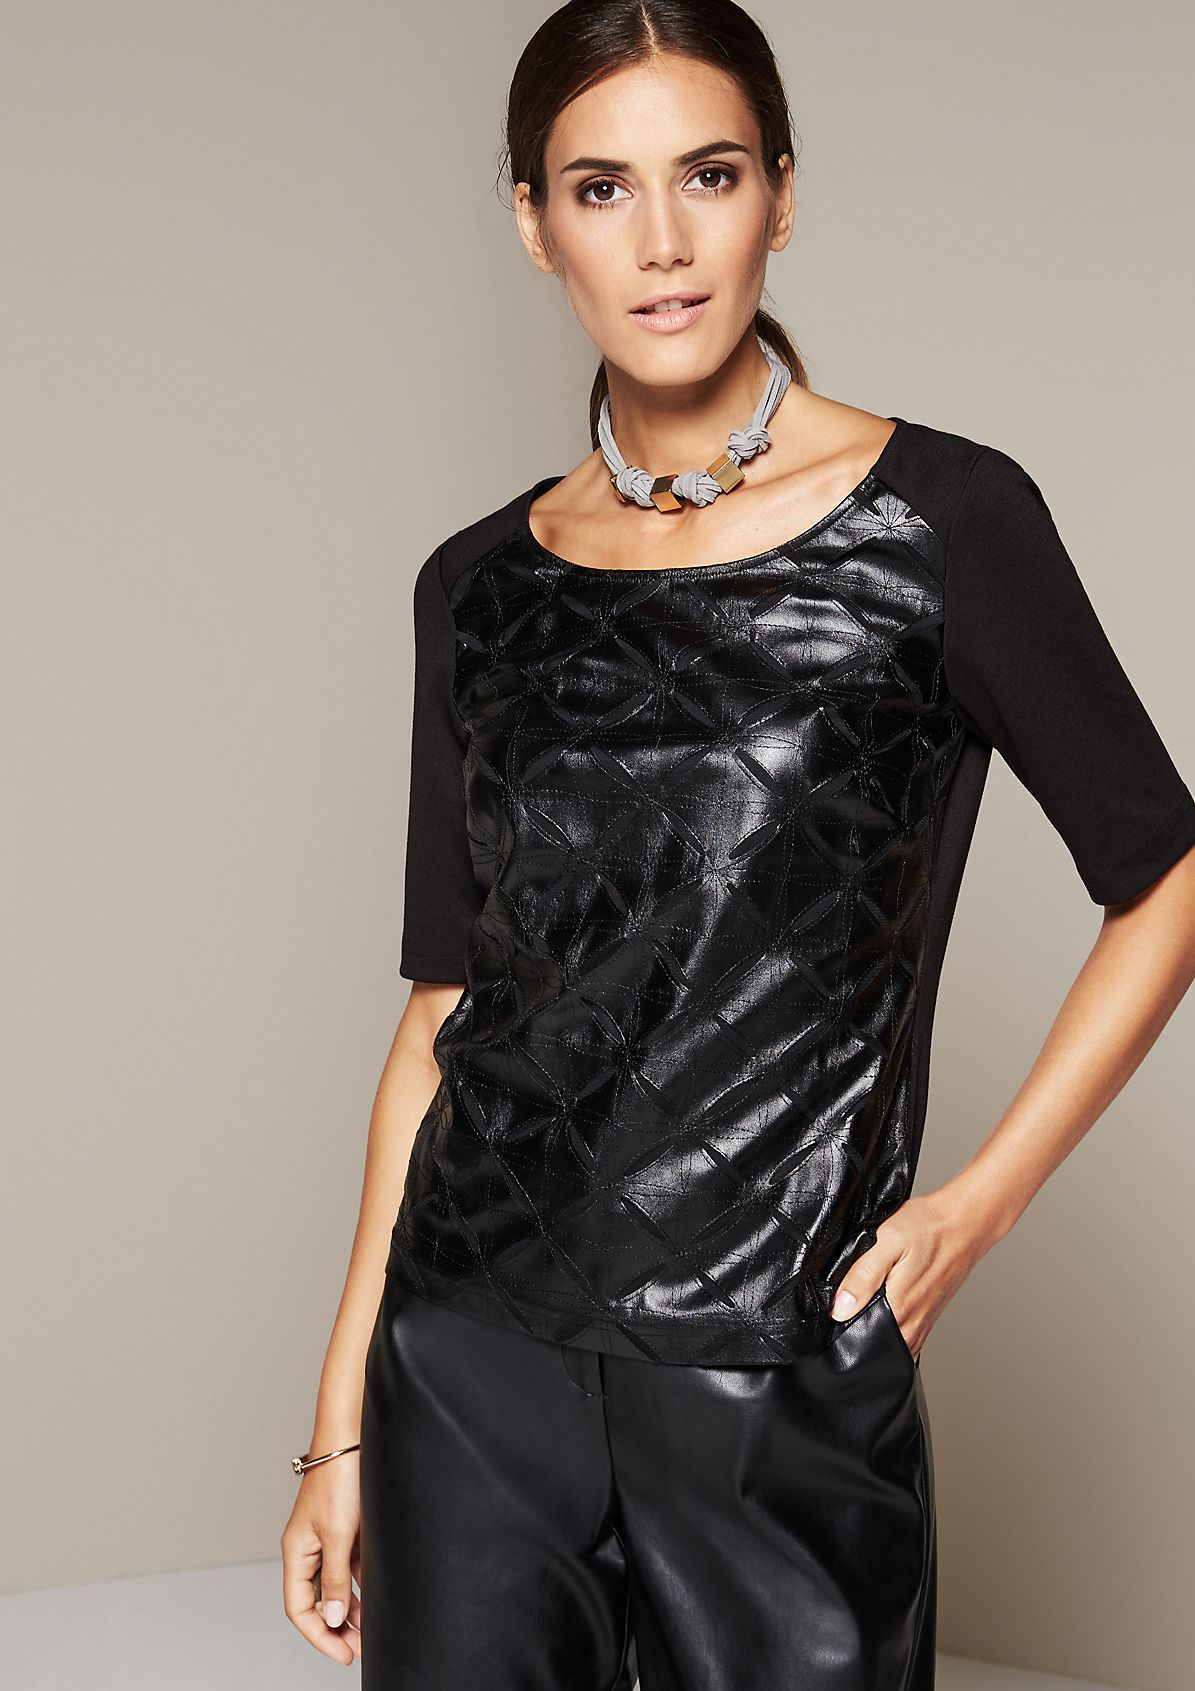 Glamorous short sleeve top with an elegant imitation leather pattern from comma